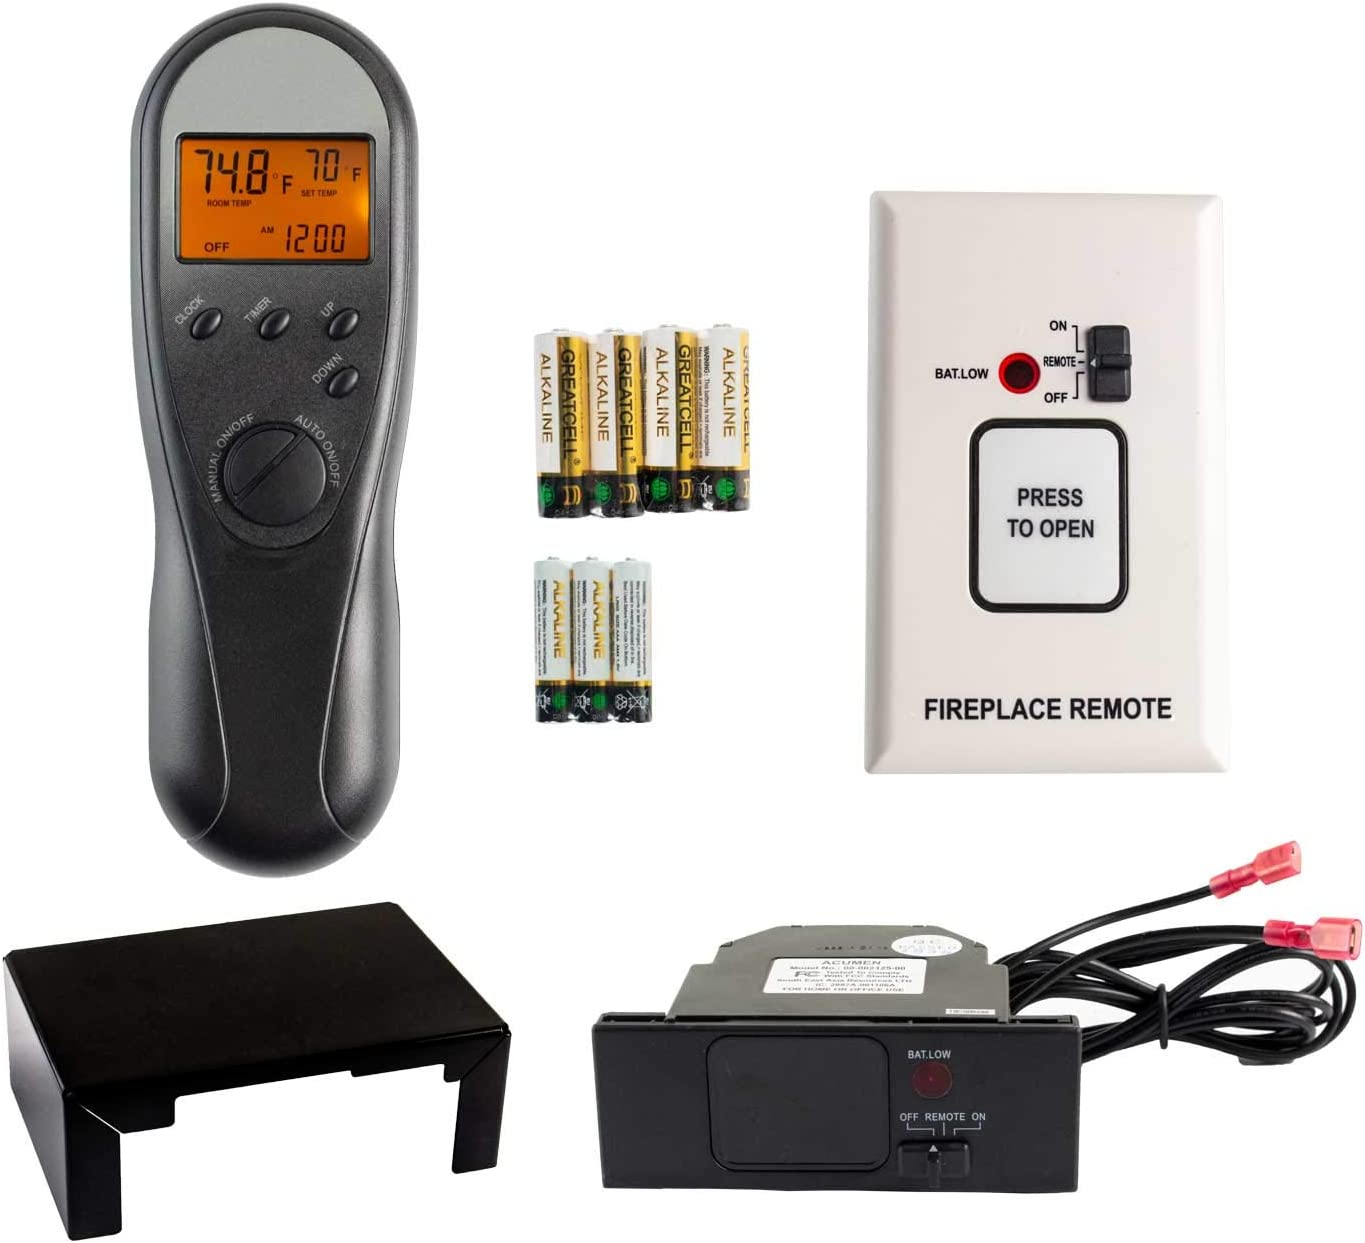 Hearth Products Controls Acumen Timer/Thermostat Fireplace Remote Control (RCK-K)